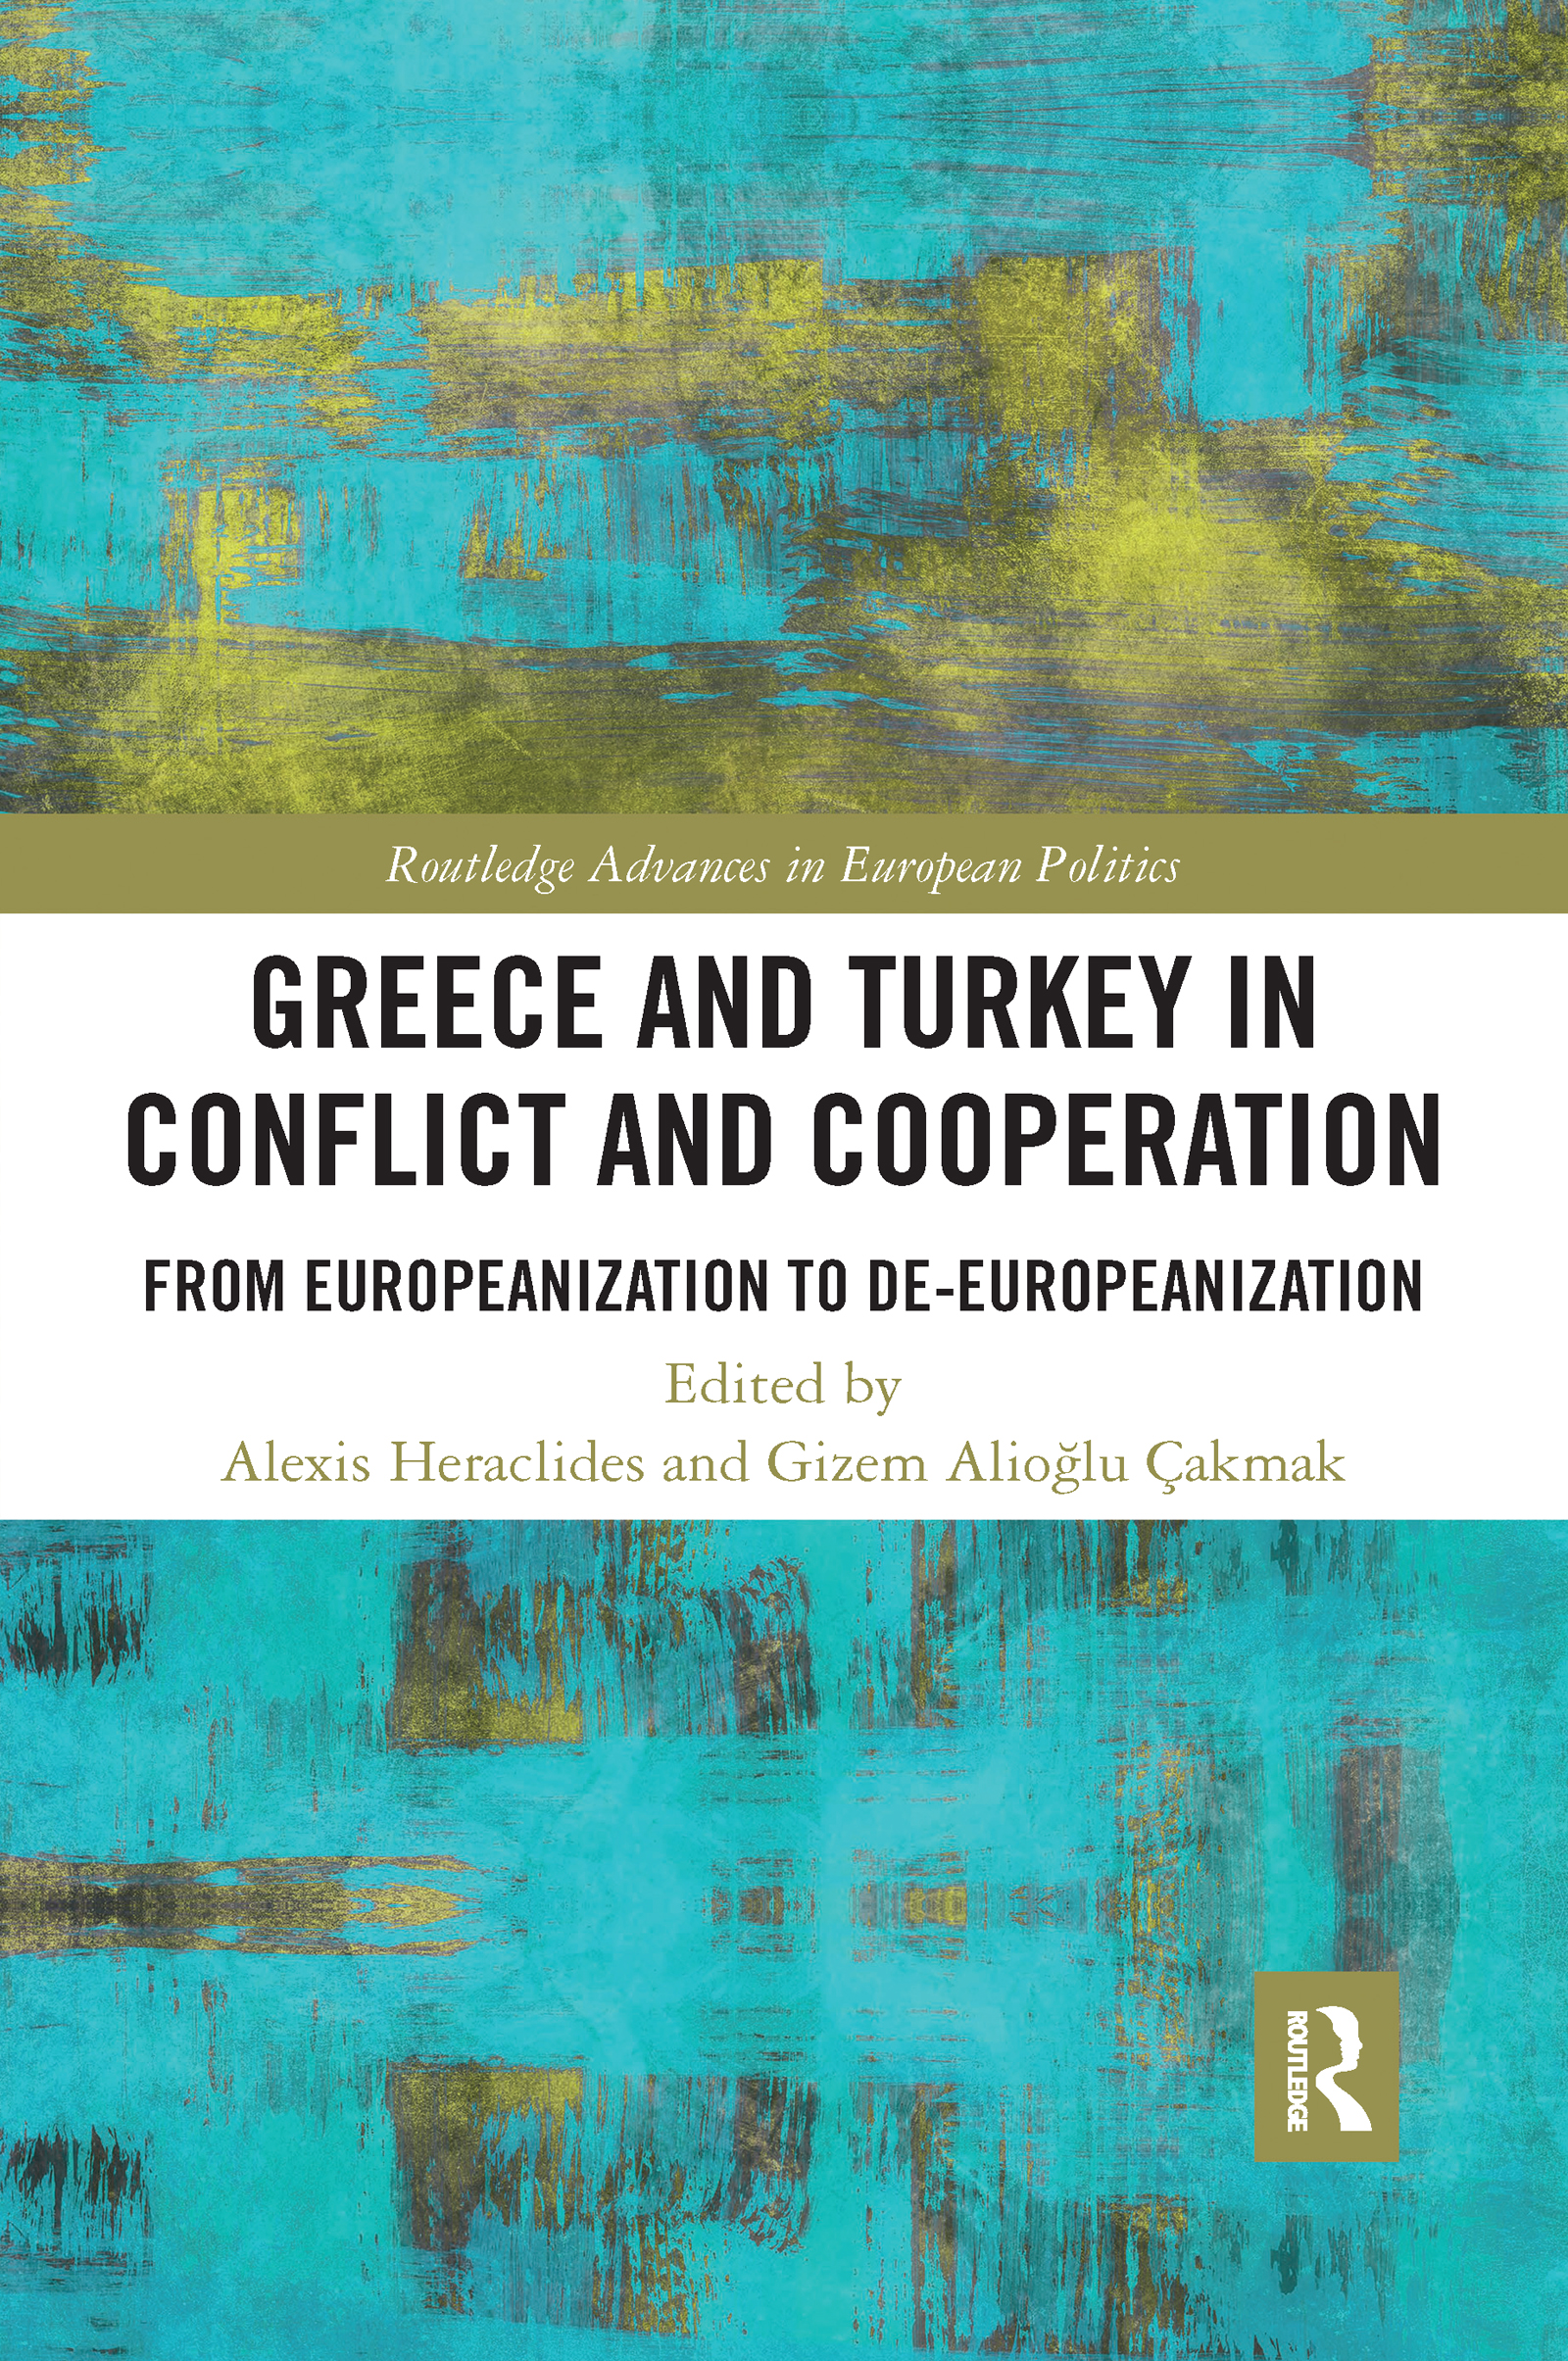 Greece and Turkey in Conflict and Cooperation